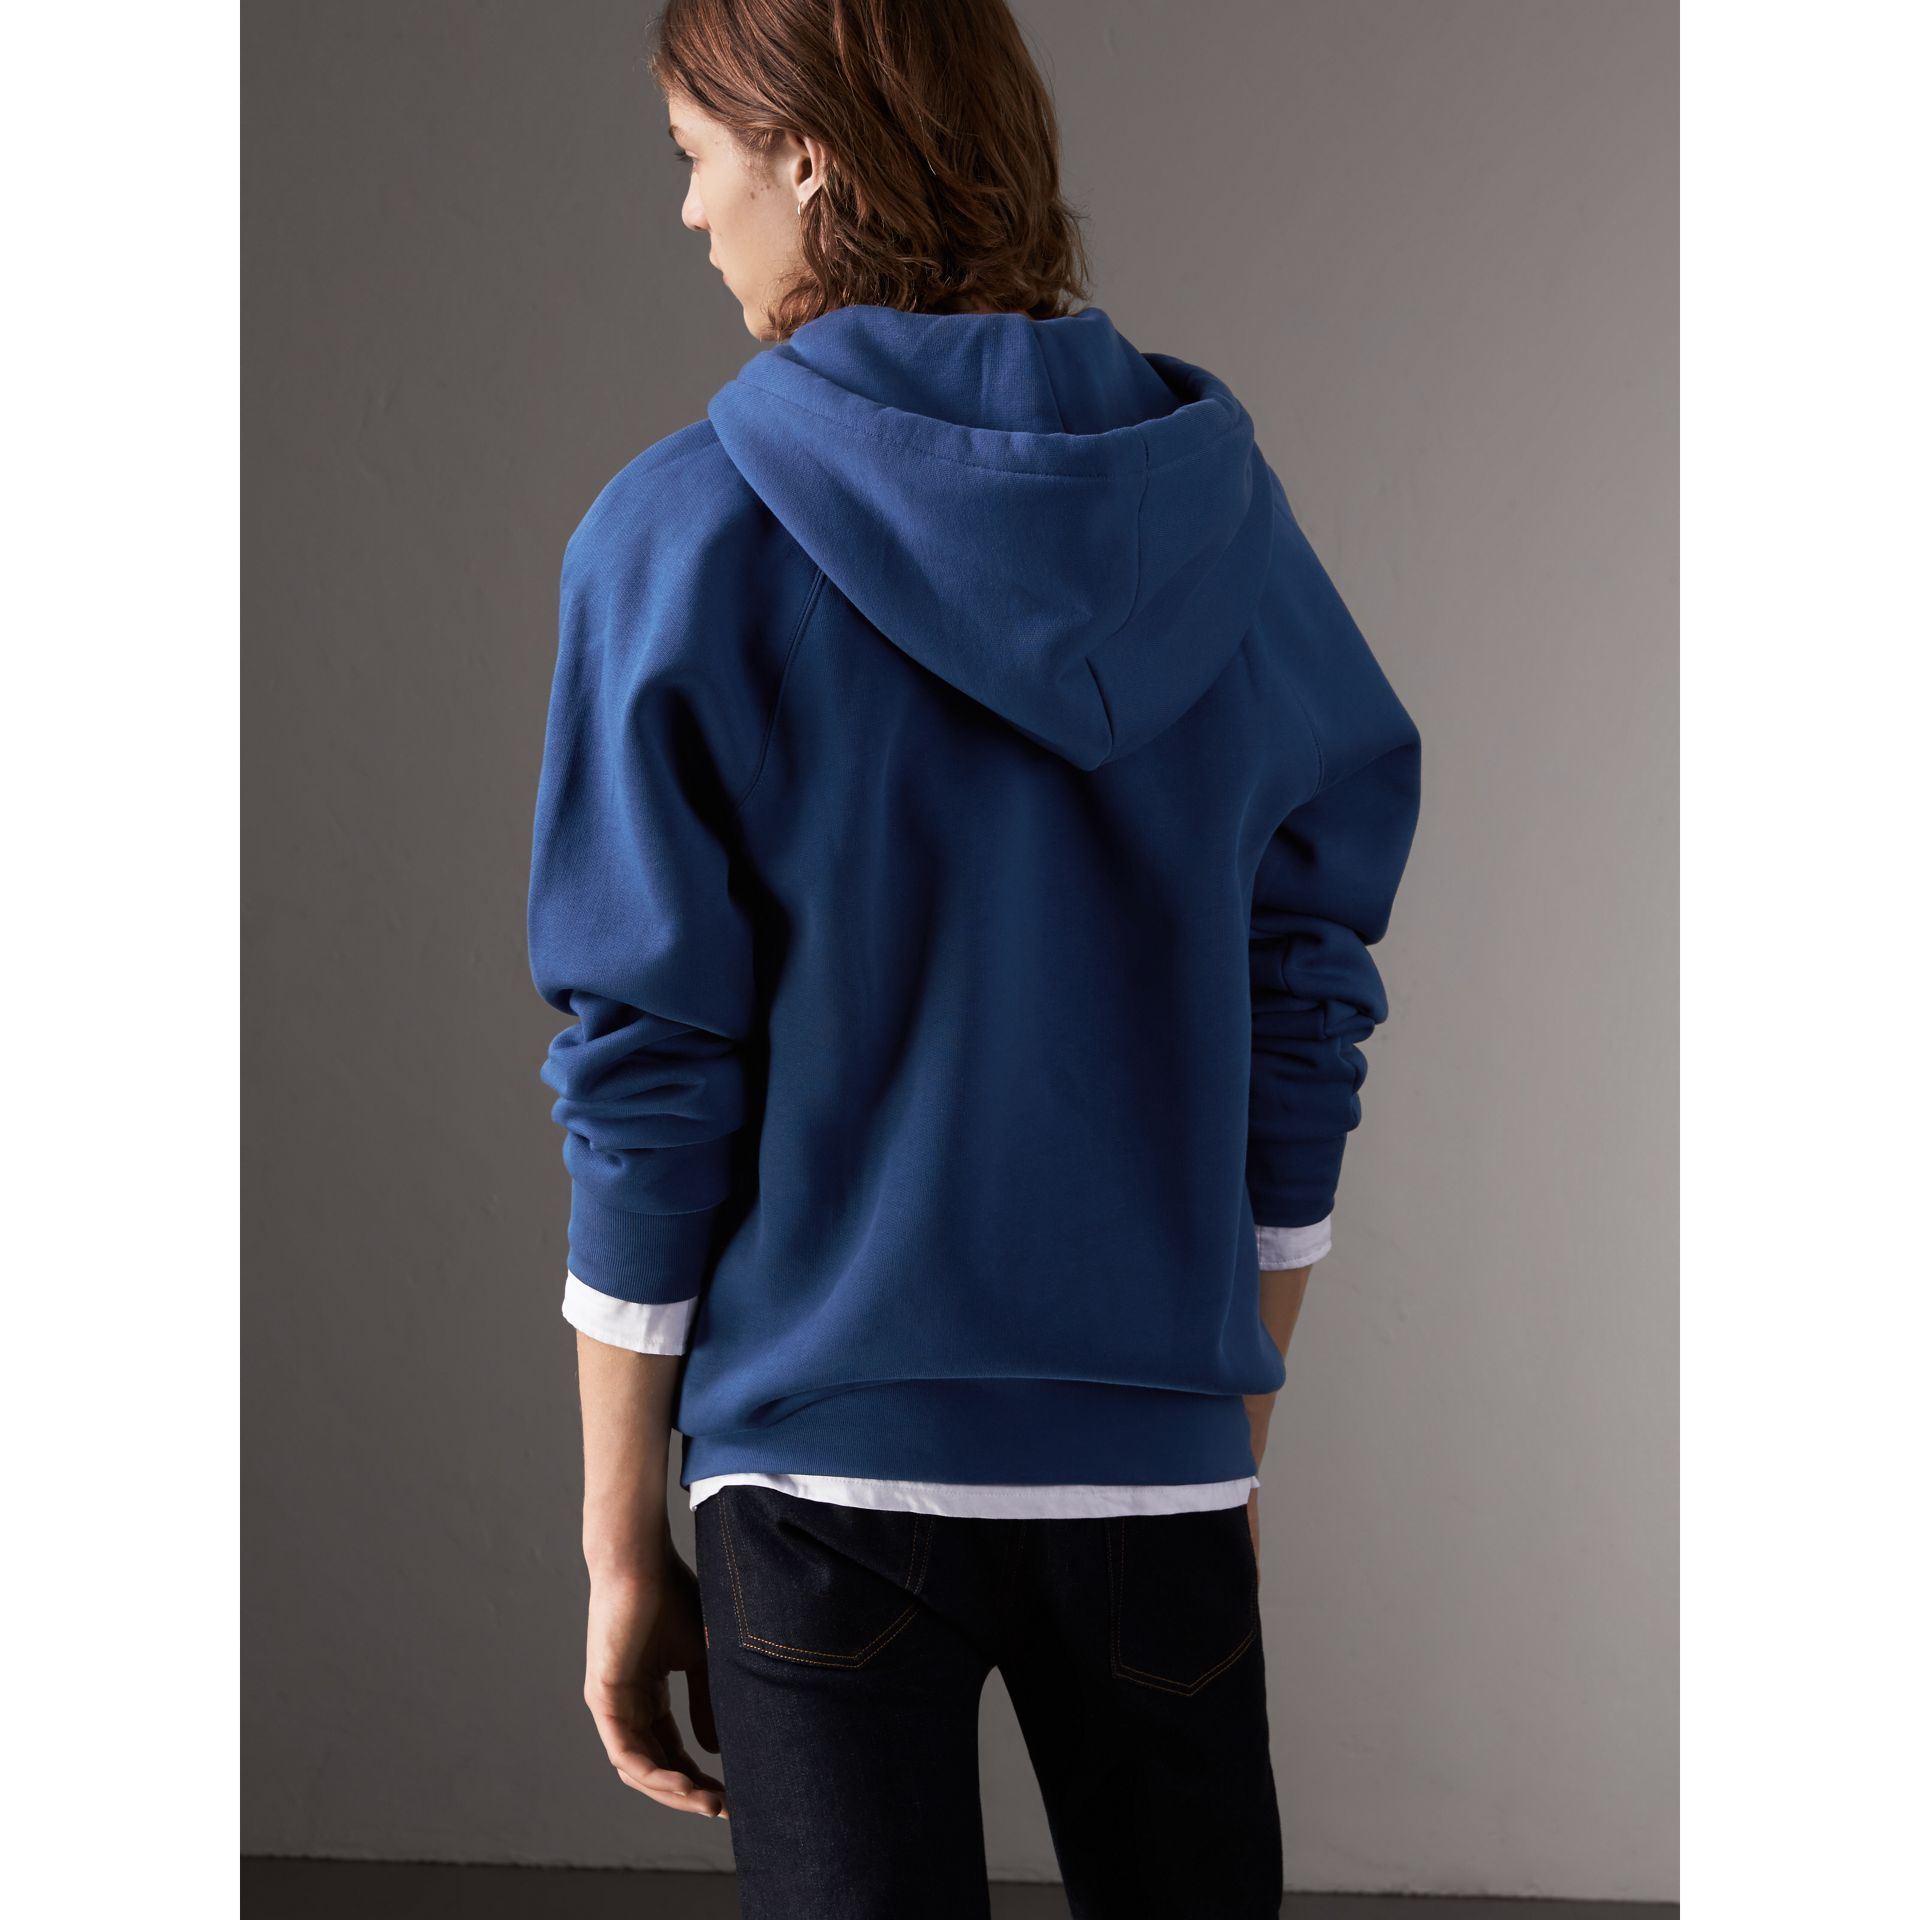 Embroidered Hooded Sweatshirt in Bright Blue - Men | Burberry United Kingdom - gallery image 3